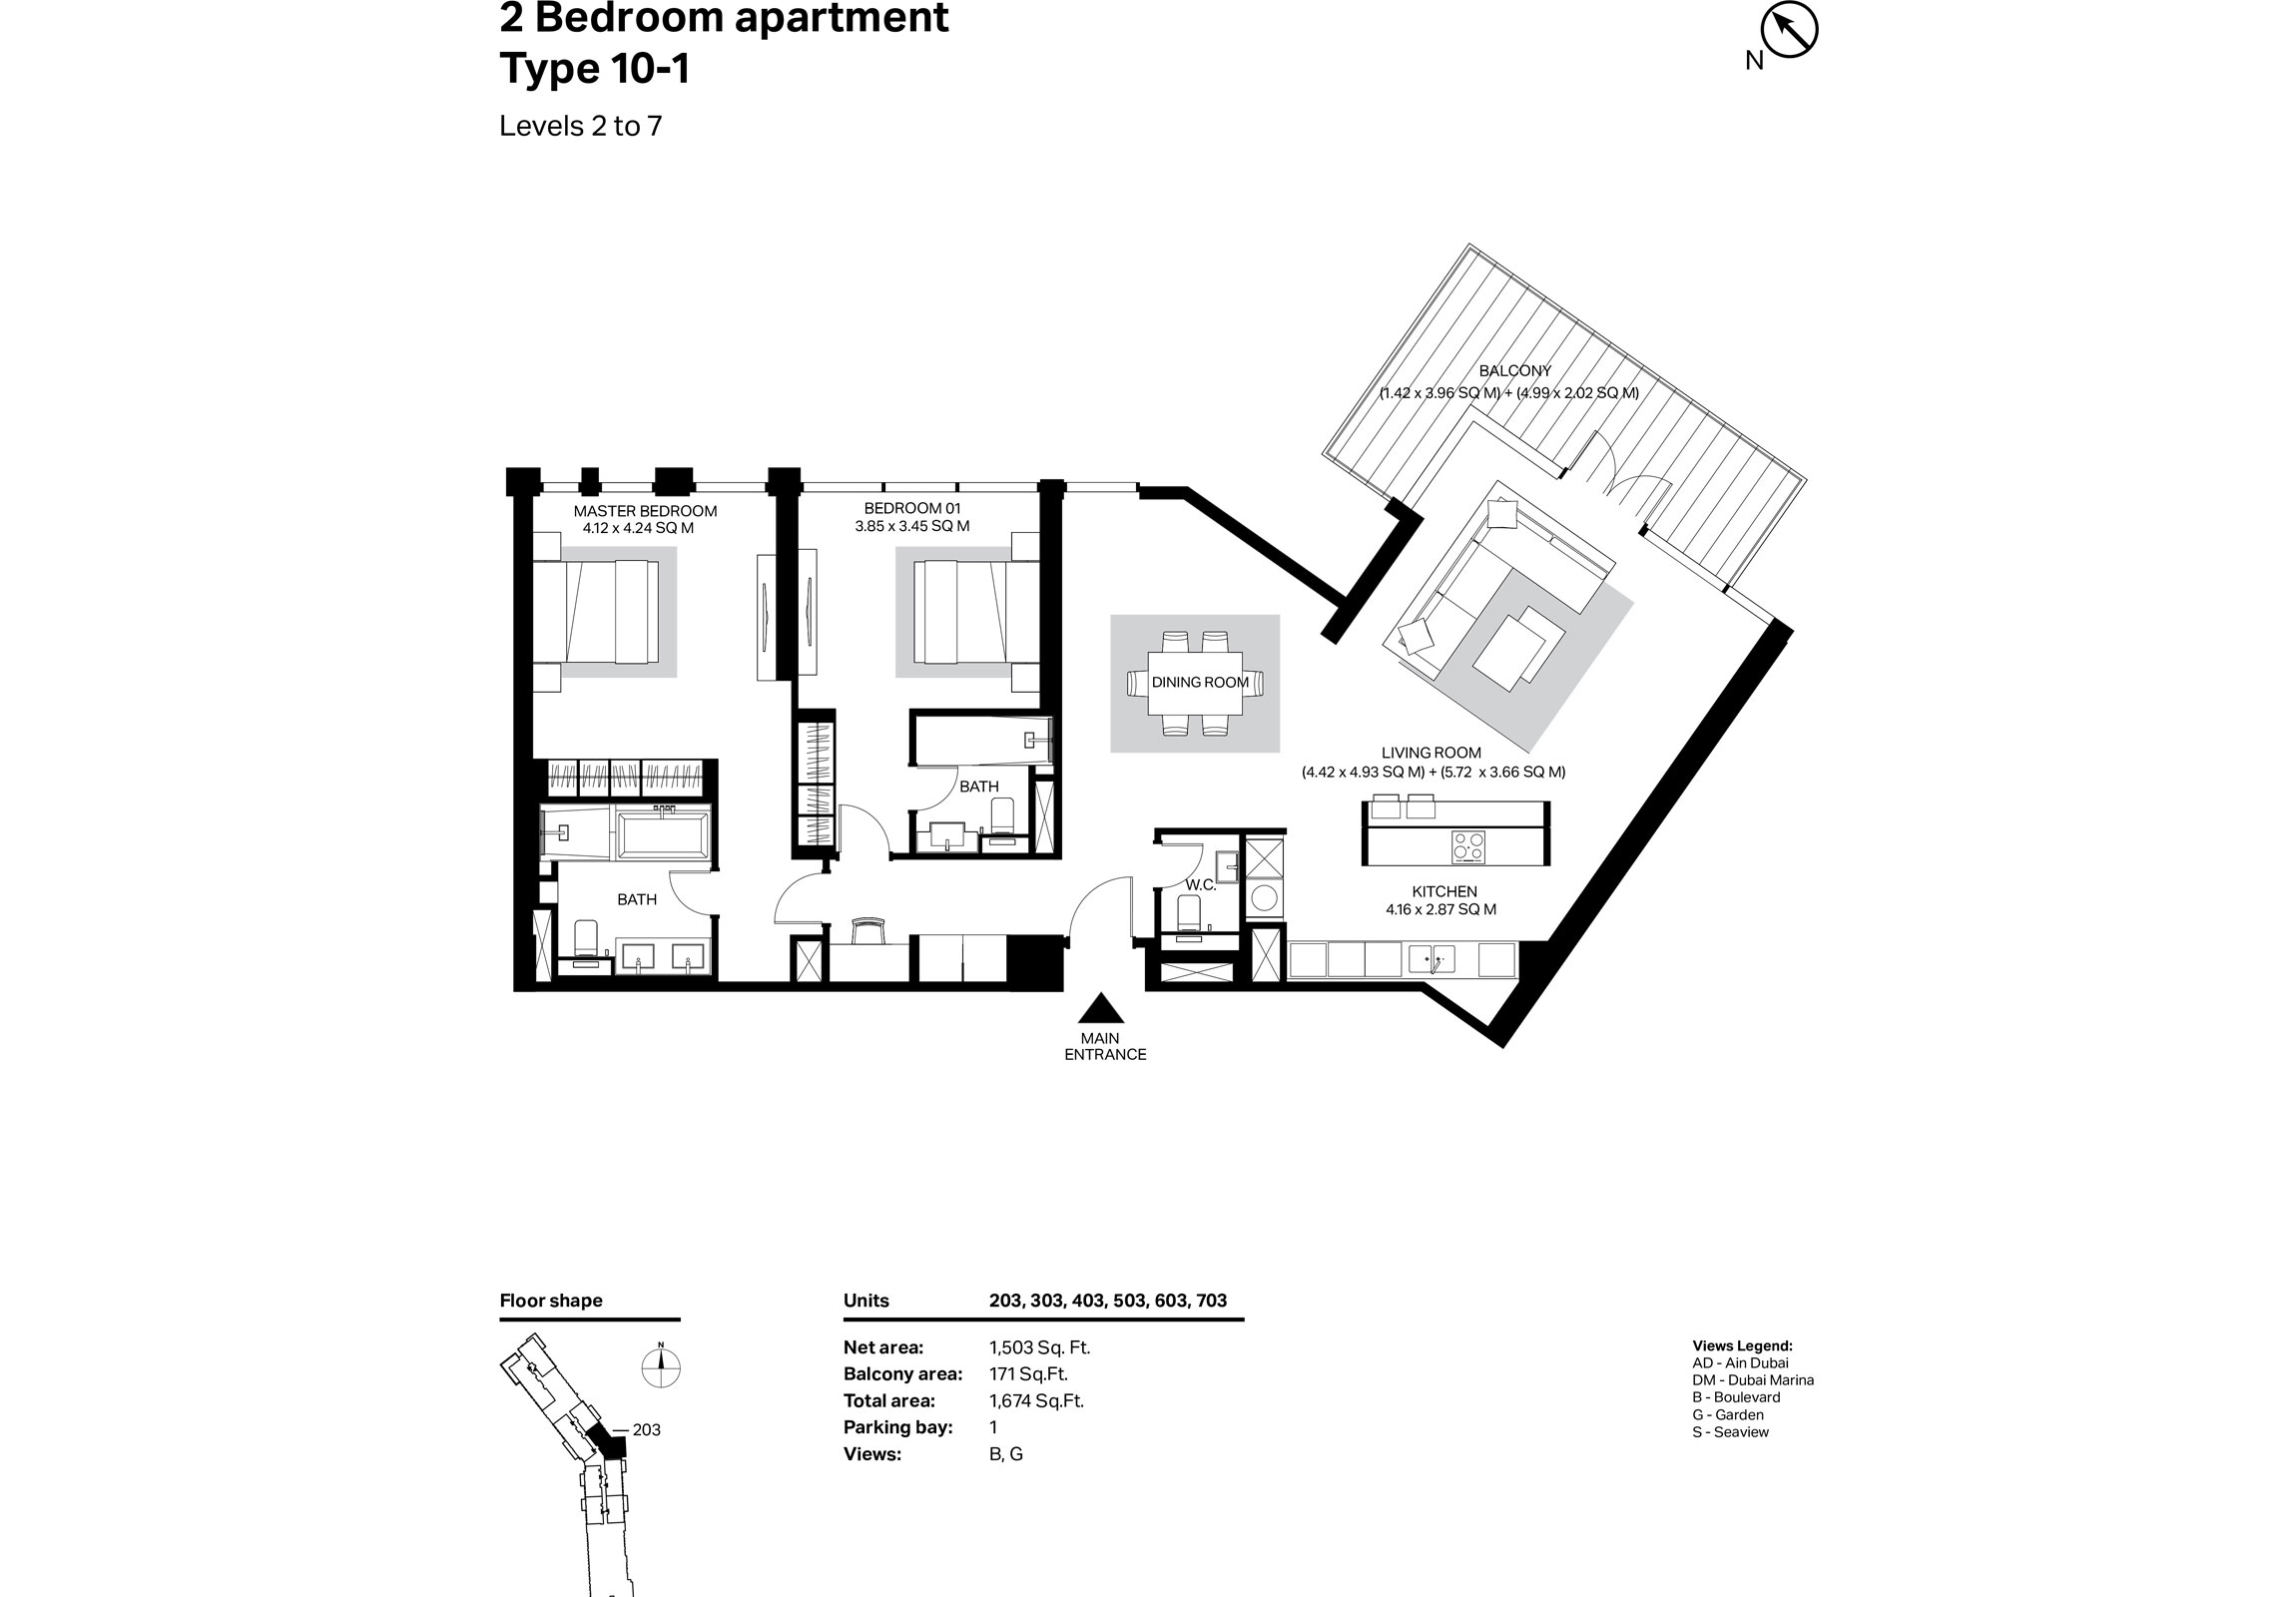 Building 2 - 2 Bedroom Type 10-1 Level 2 To 7 Size 1674    sq. ft.